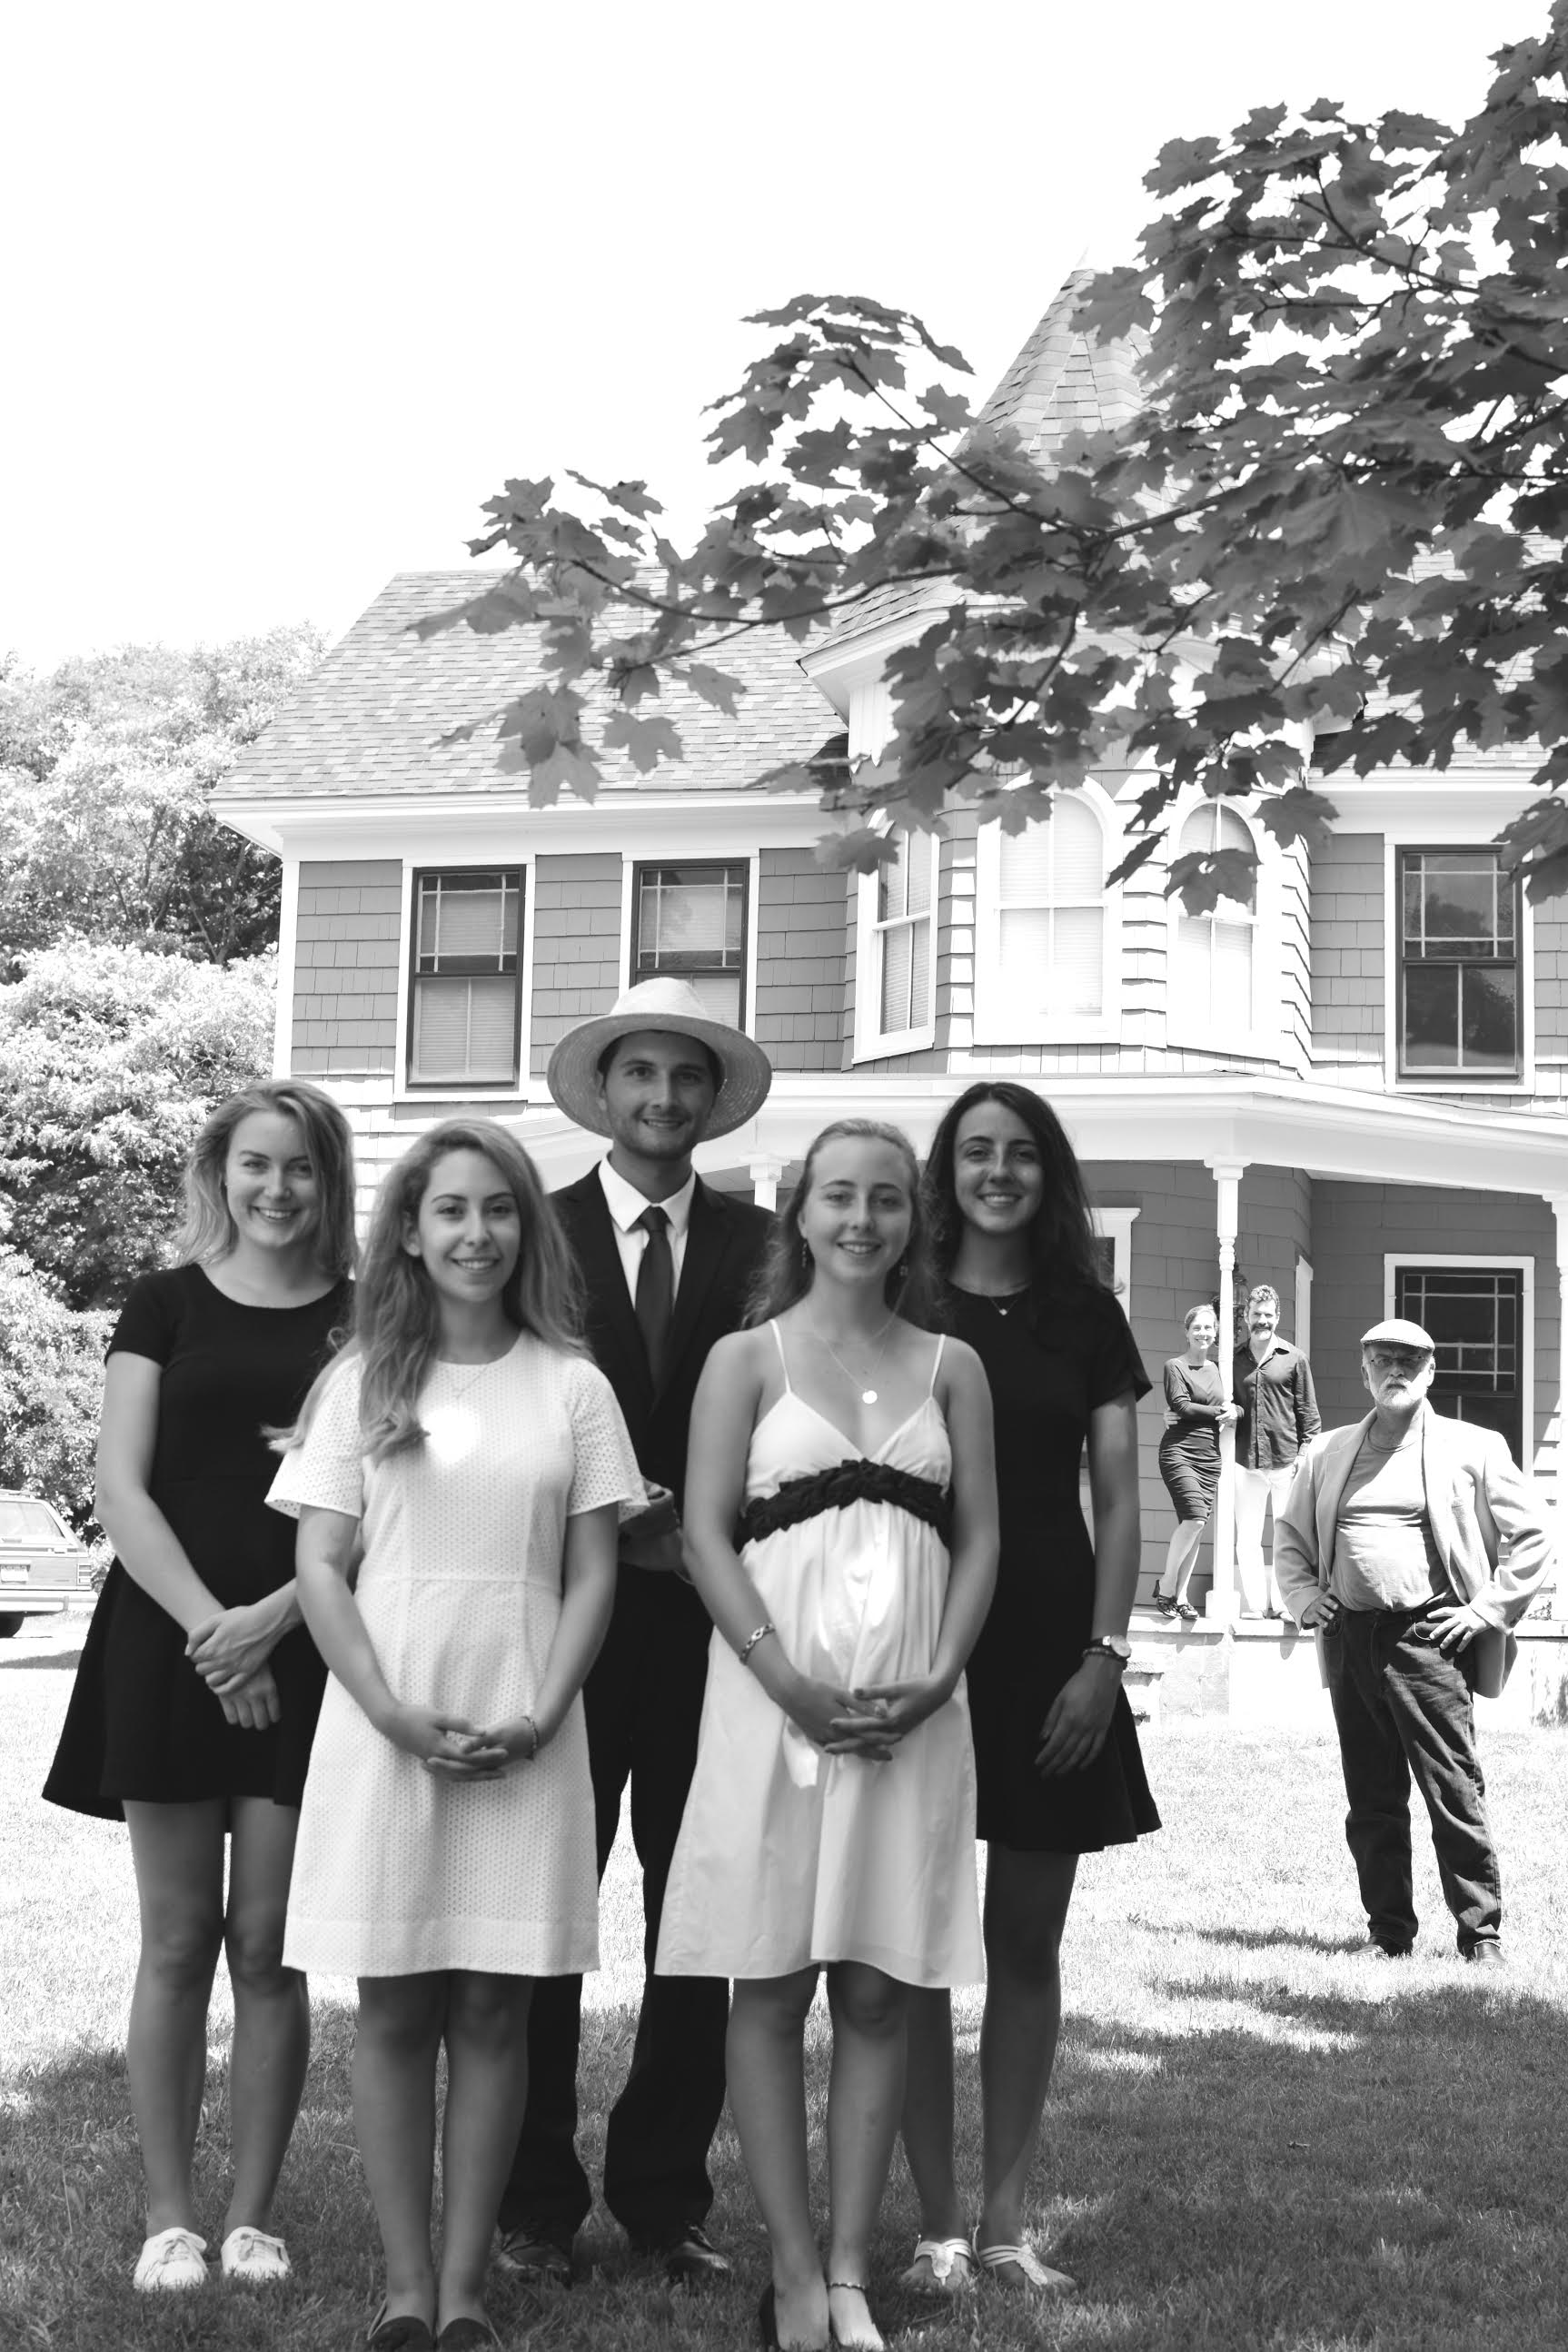 Seneca, Glori, RJ, Mia, Sarah, Anne, Marc, Richard  ECI Foster House Pioneers, Summer 2016